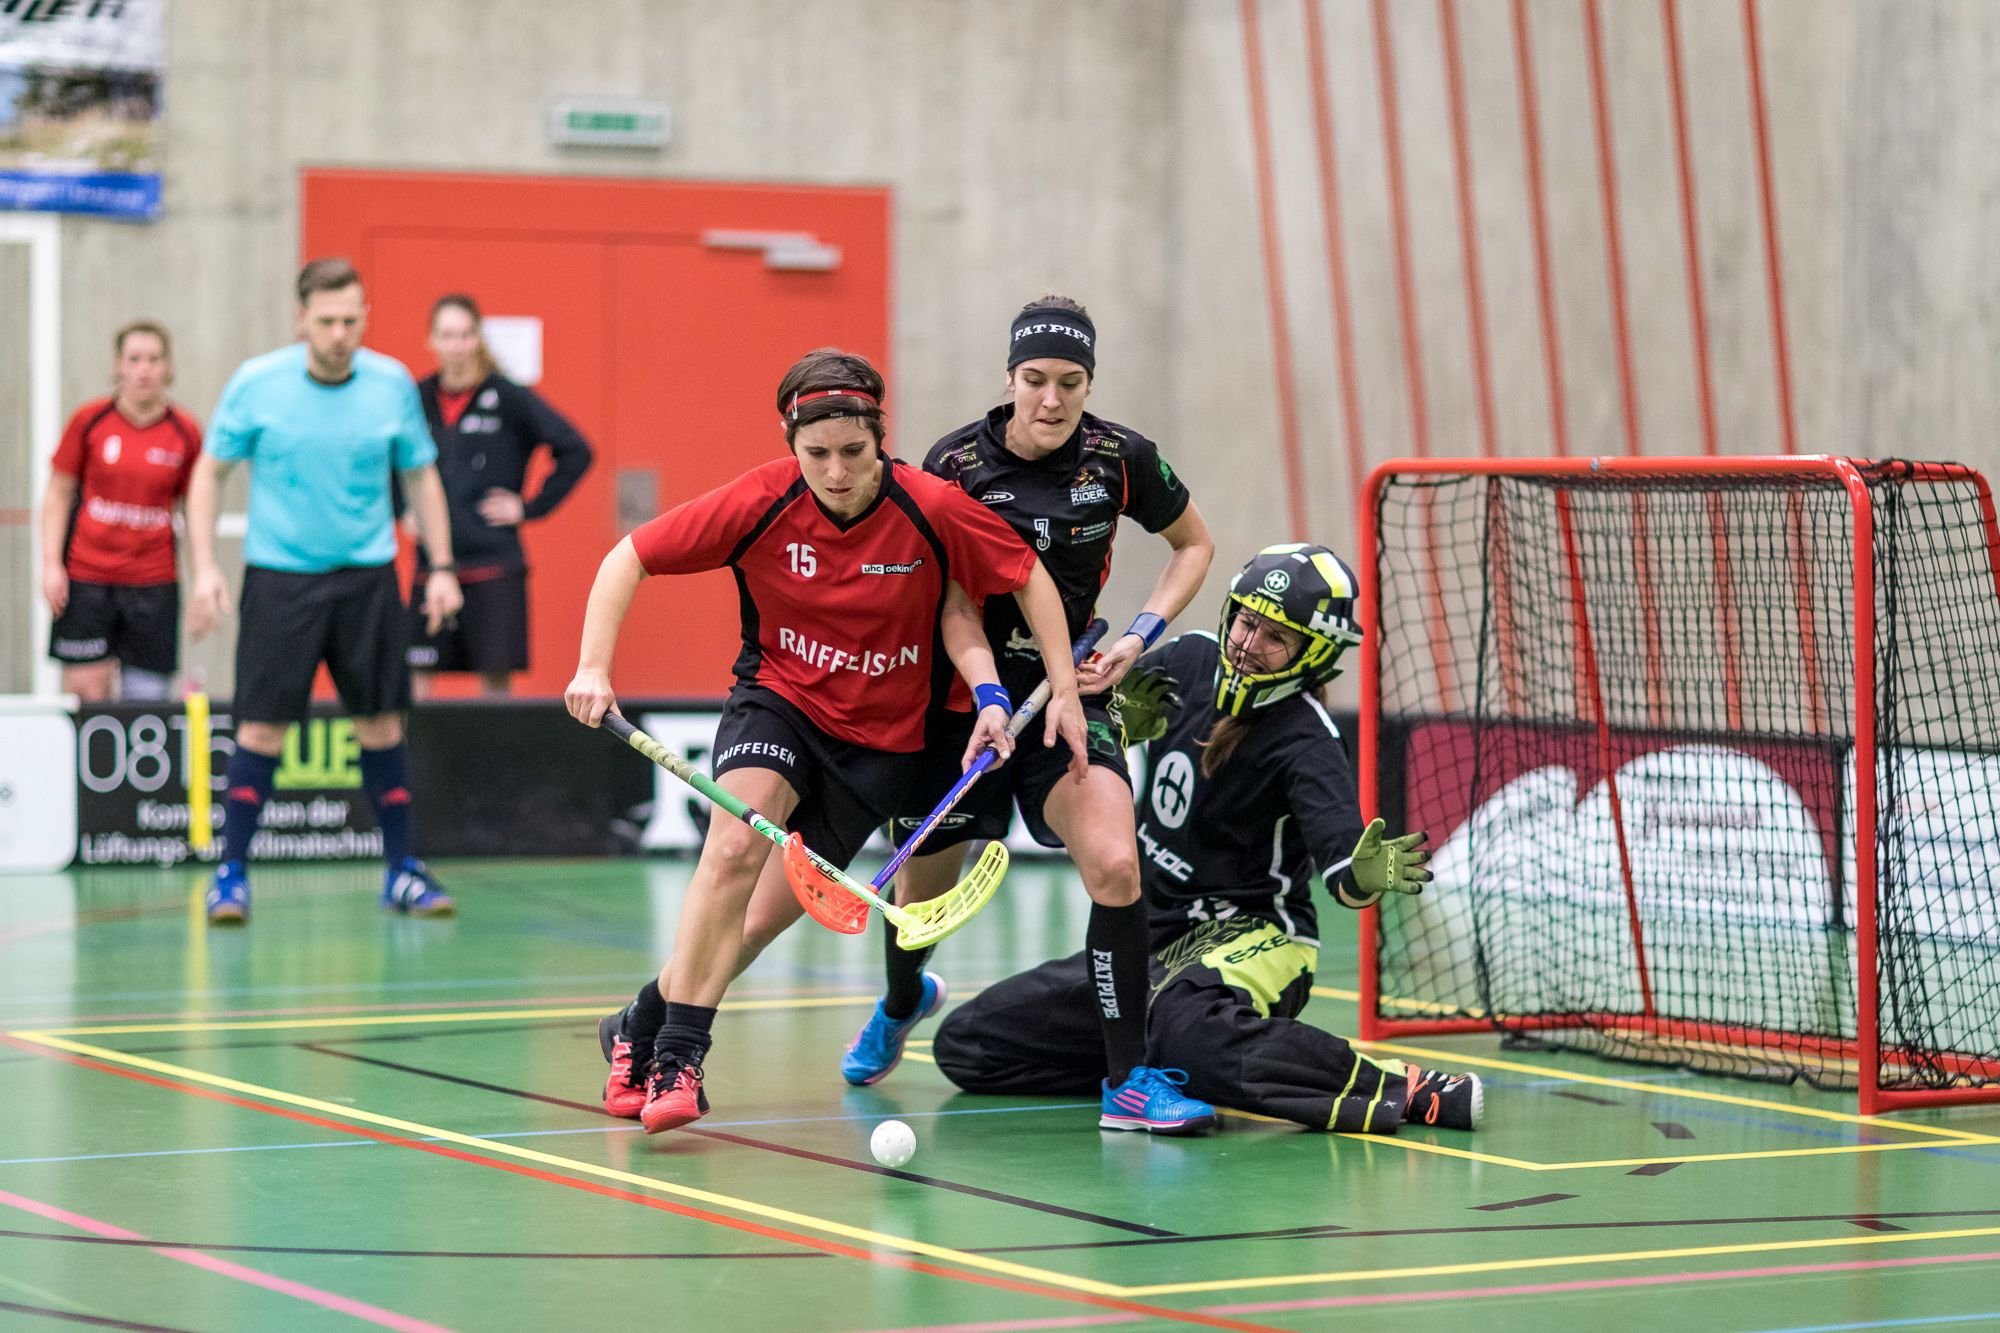 Floorball Riders vs UHC Oekingen by André Burri.jpg